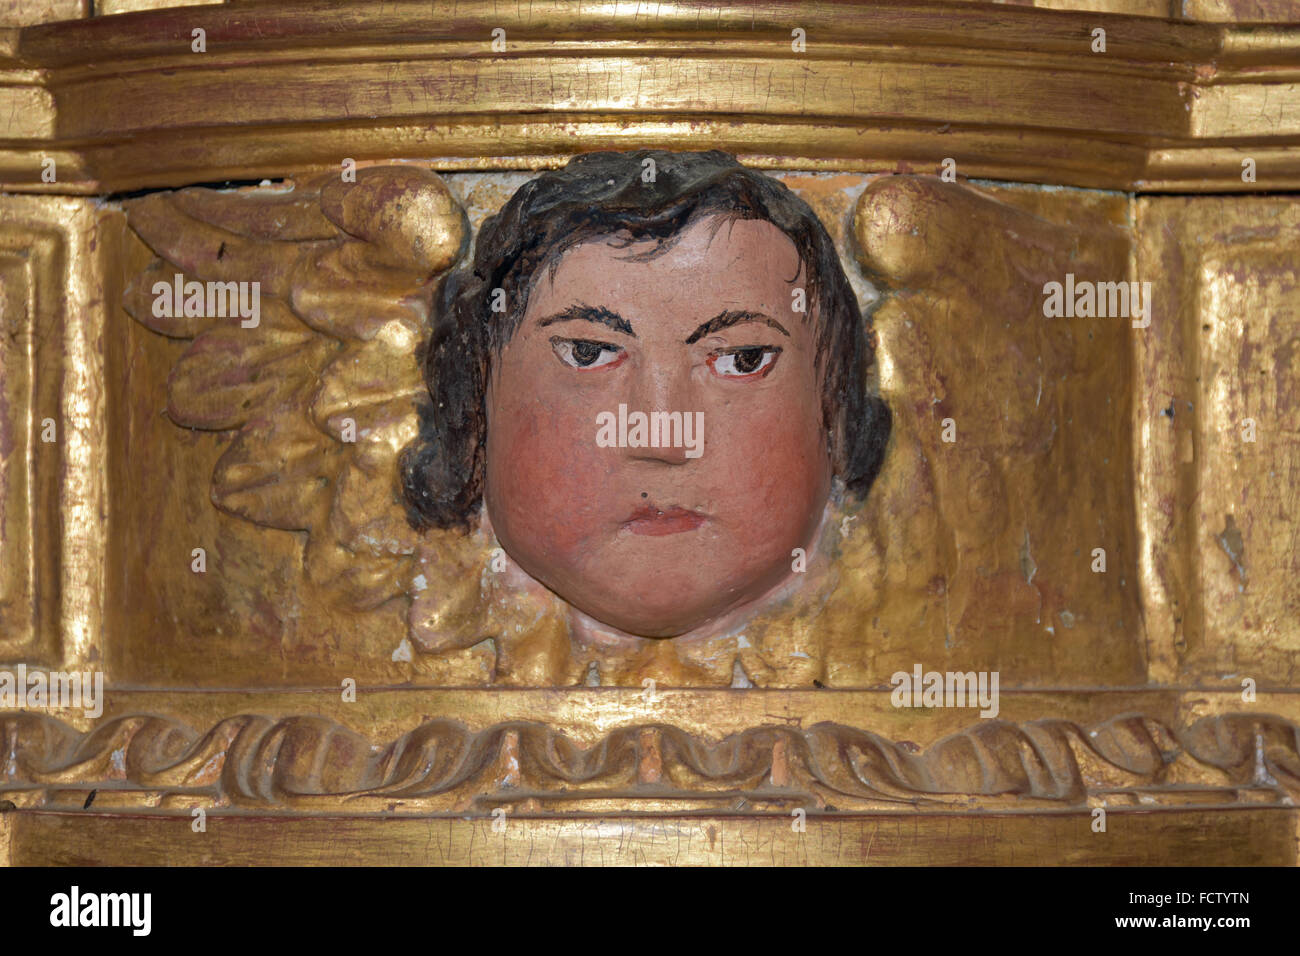 Face in altarpiece of Eglise de Diusse, France - Stock Image